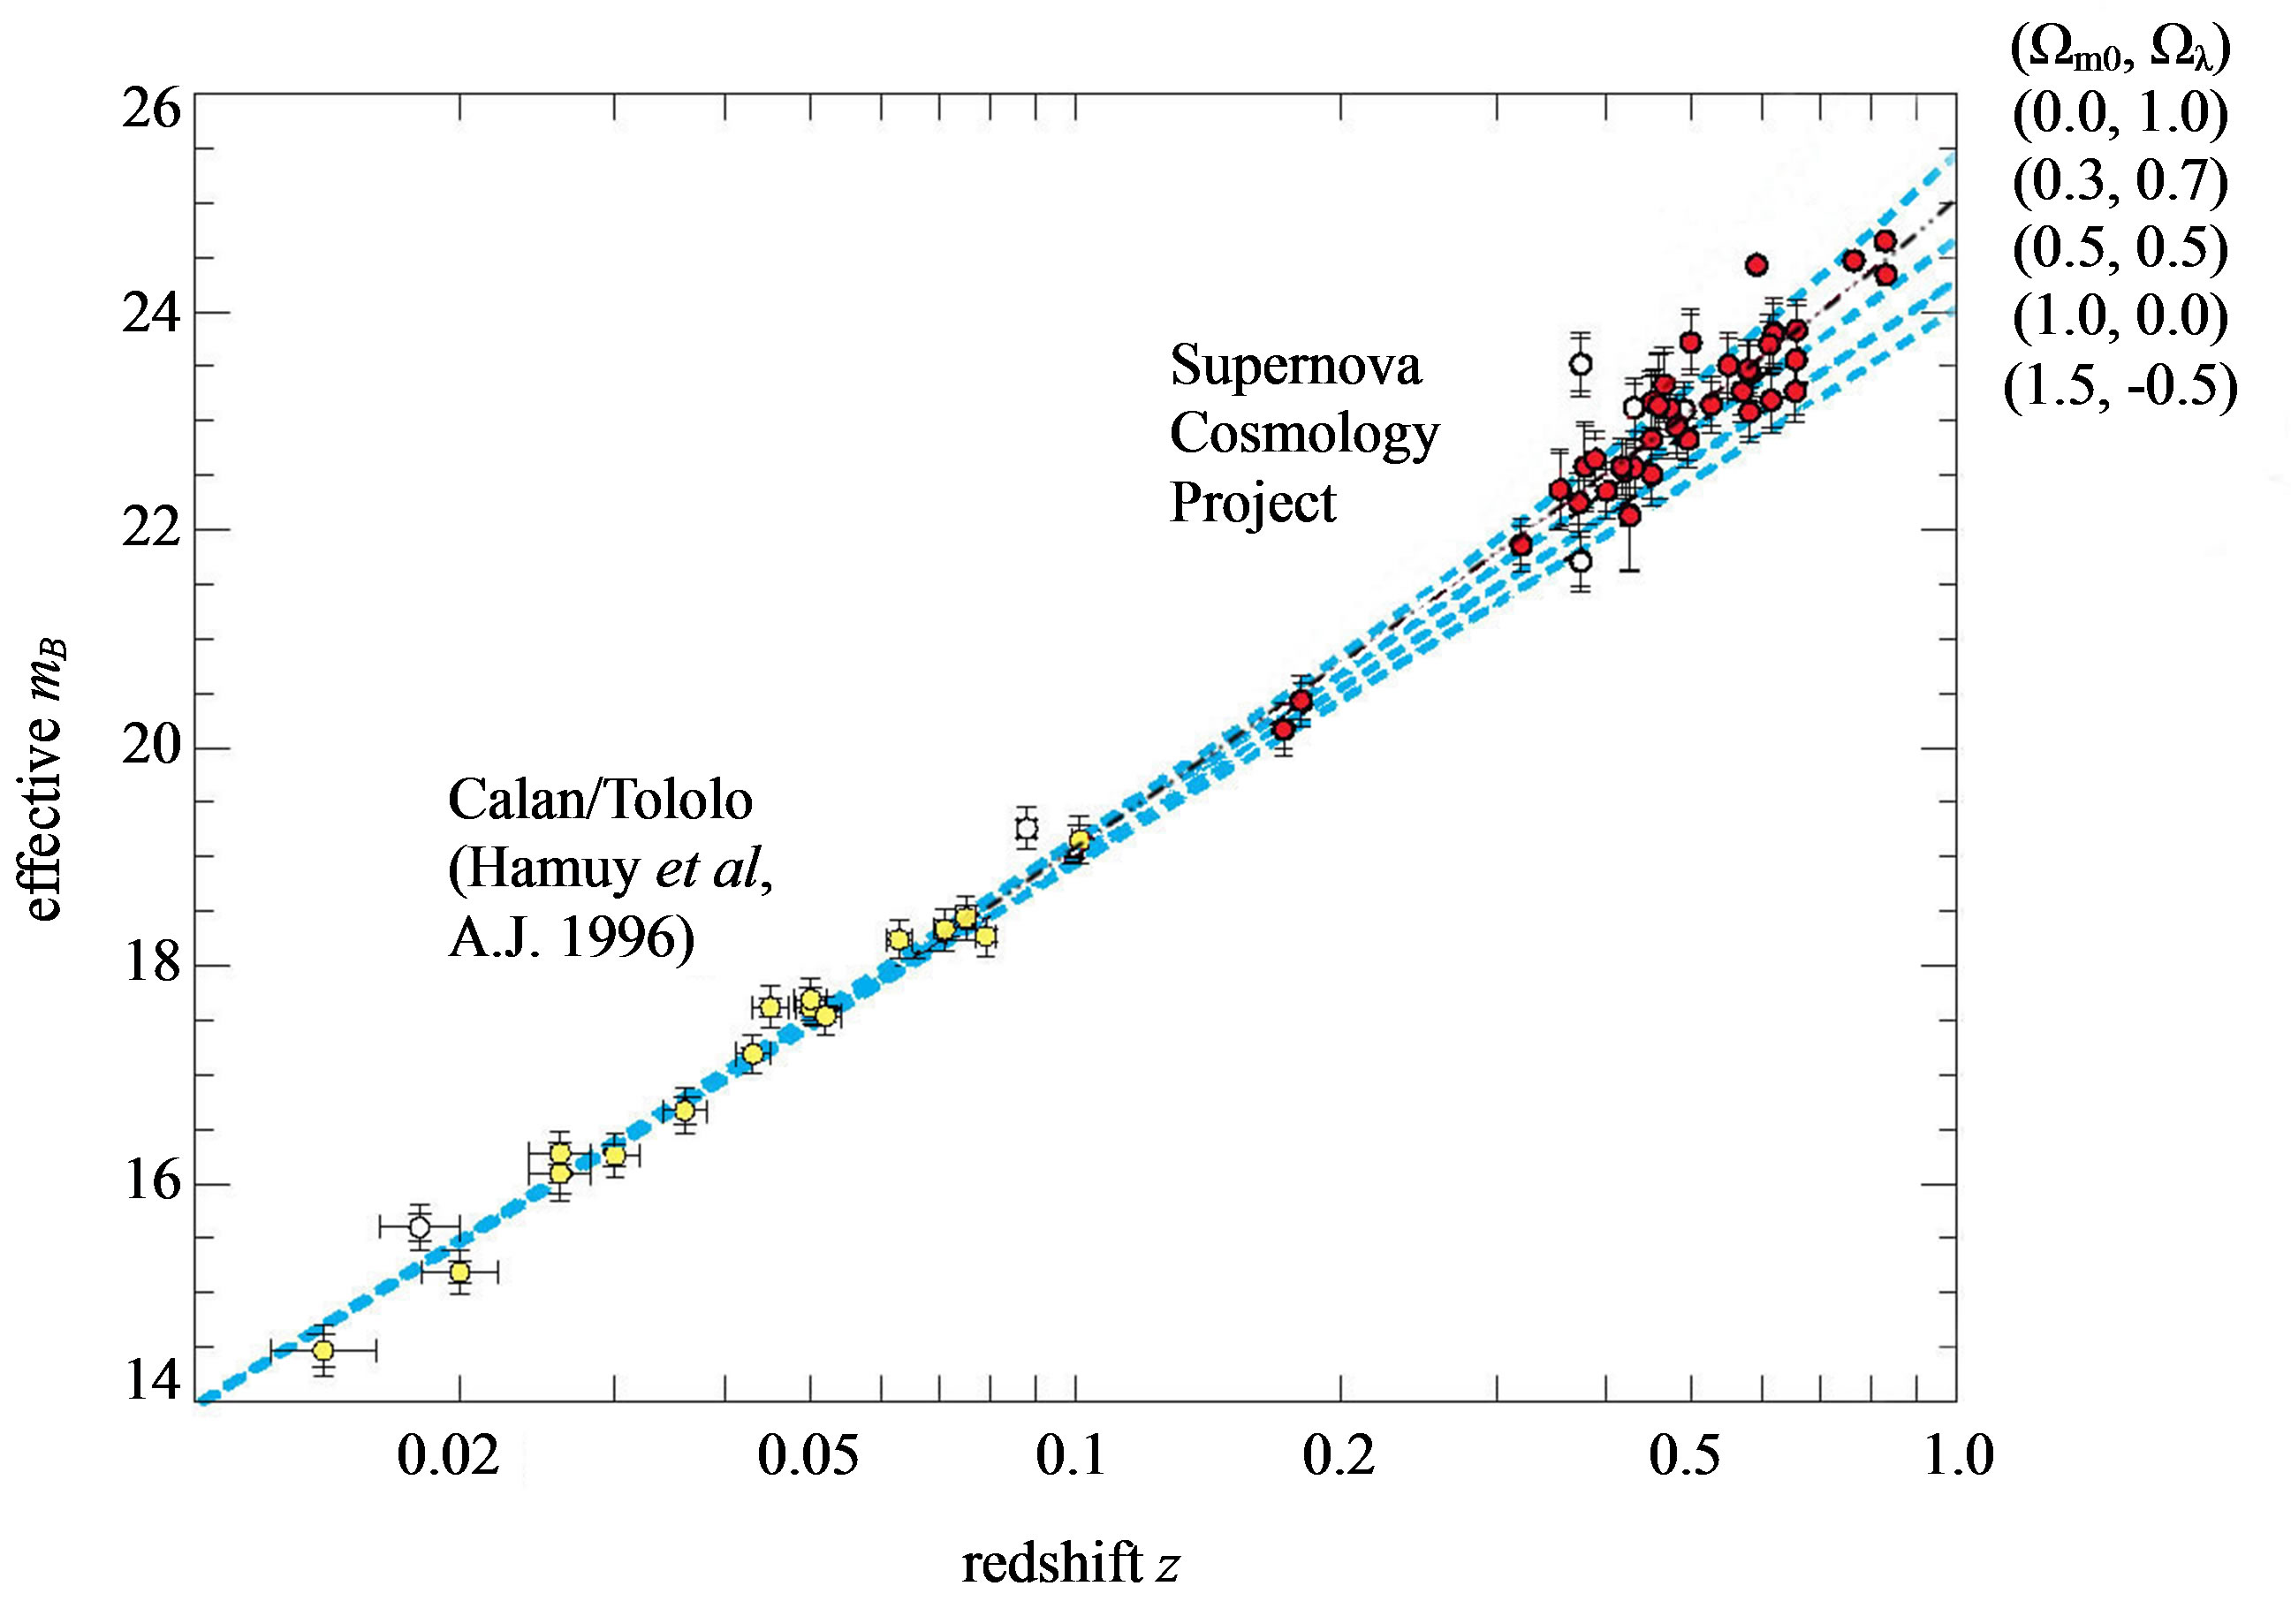 hubble redshift distance relationship